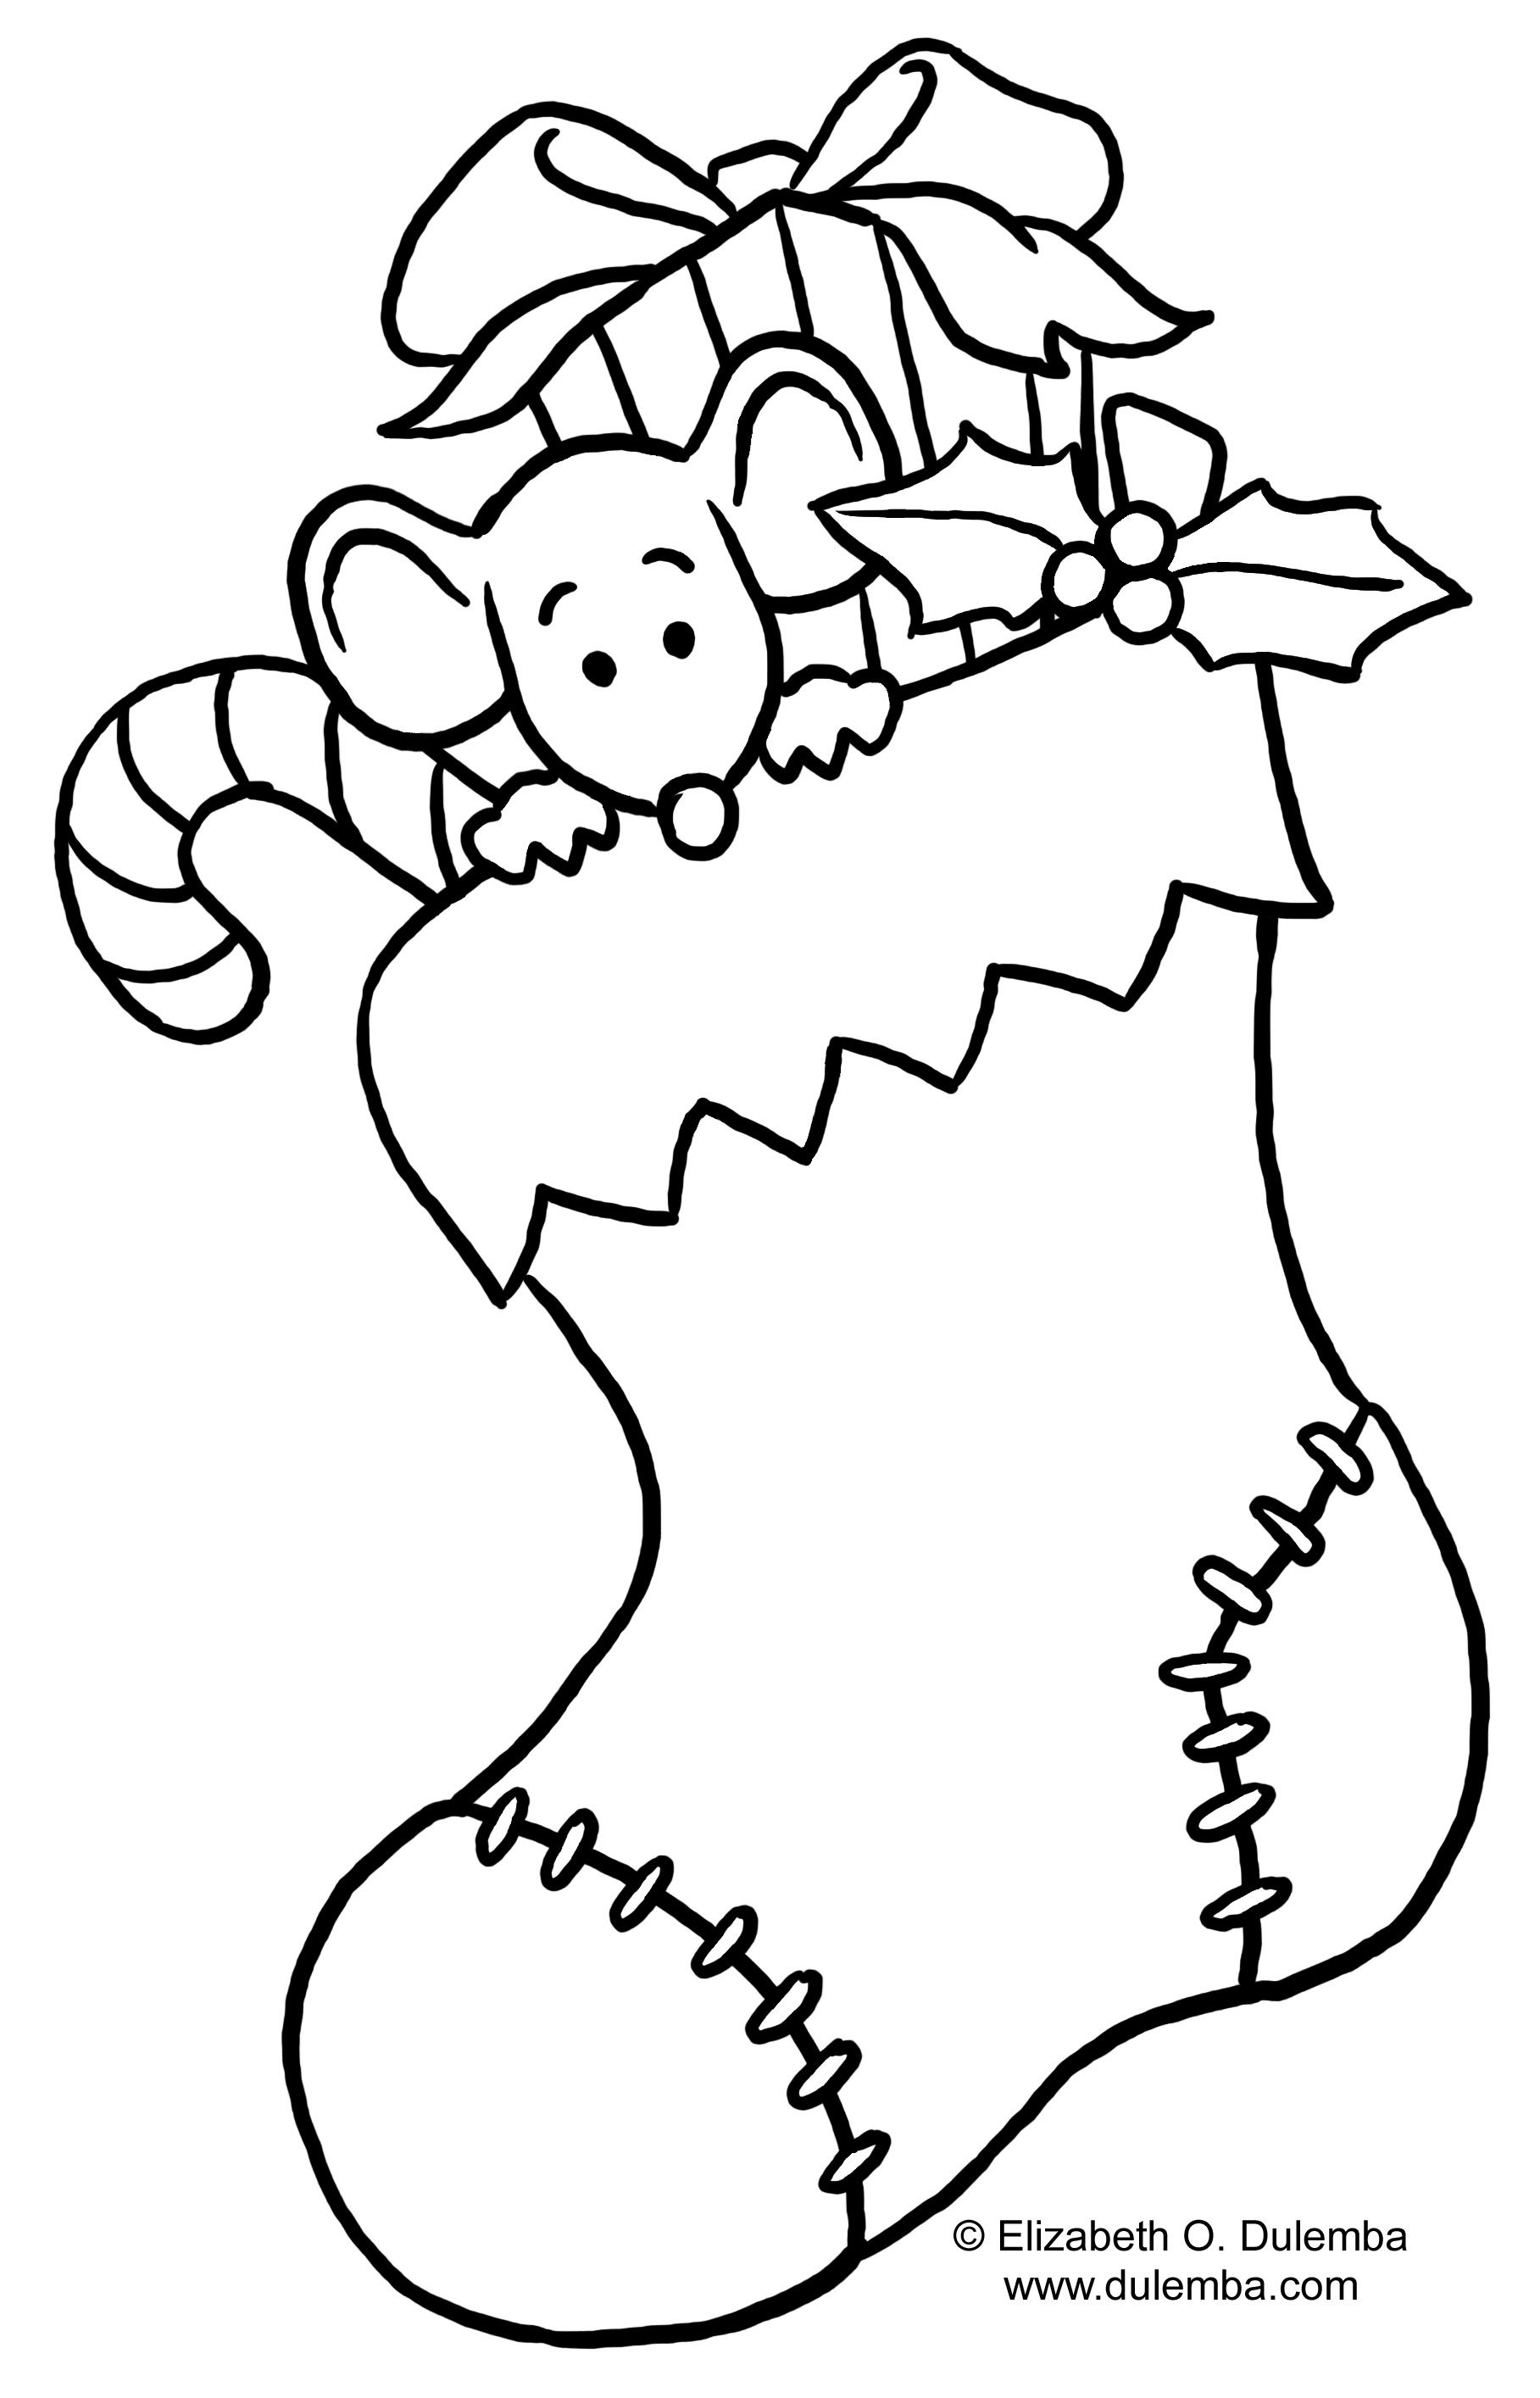 http://www.justcoloring.com/images/Christmas-coloring-pages-13.jpg ...